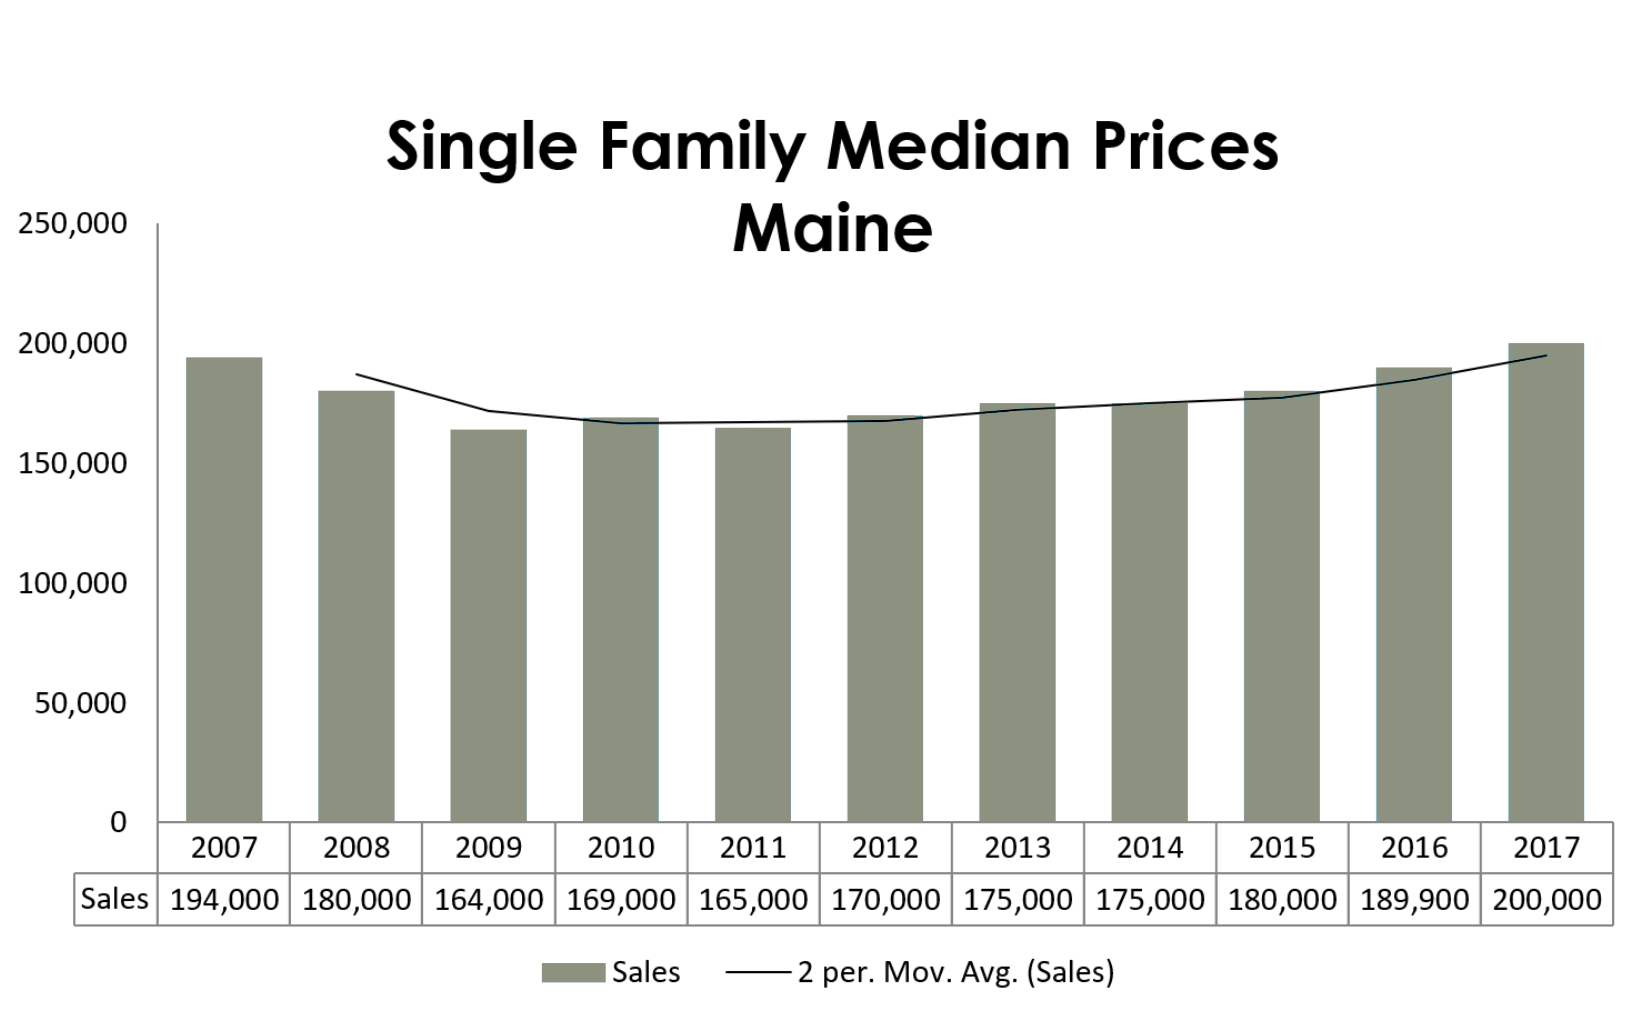 single-family-median-sales-maine-2017.png